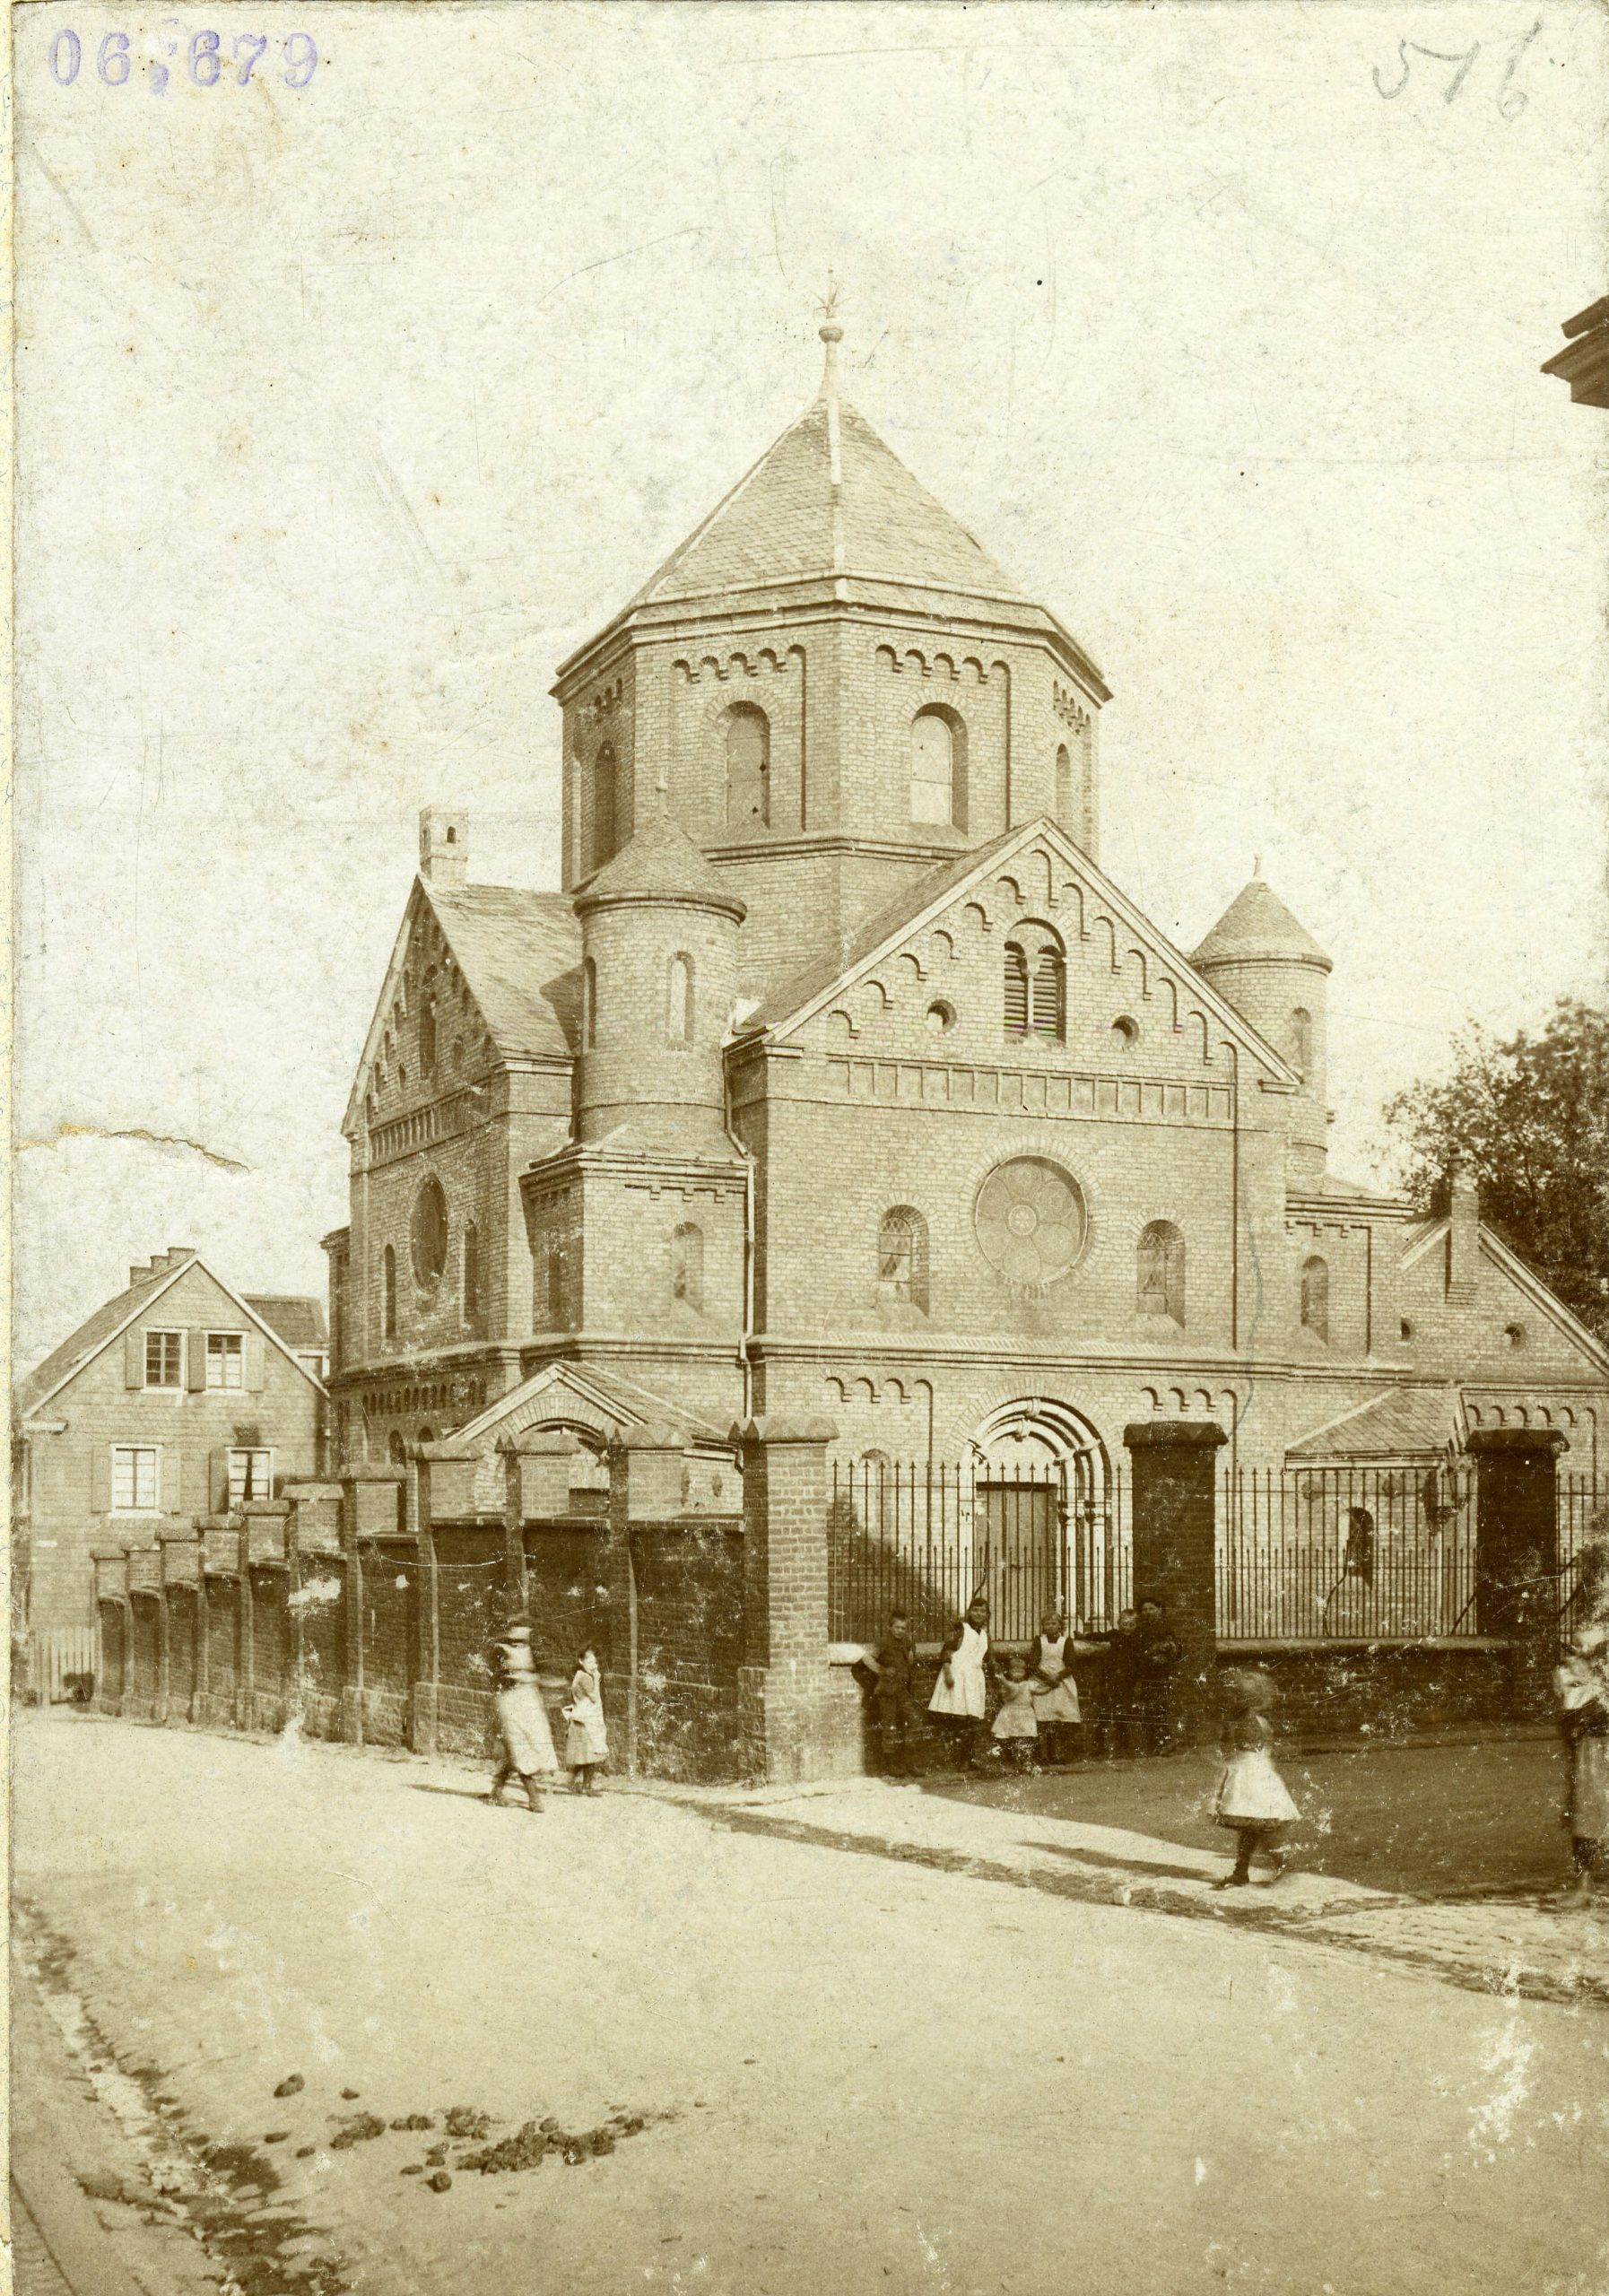 The Solingen synagogue on Malteserstrasse.